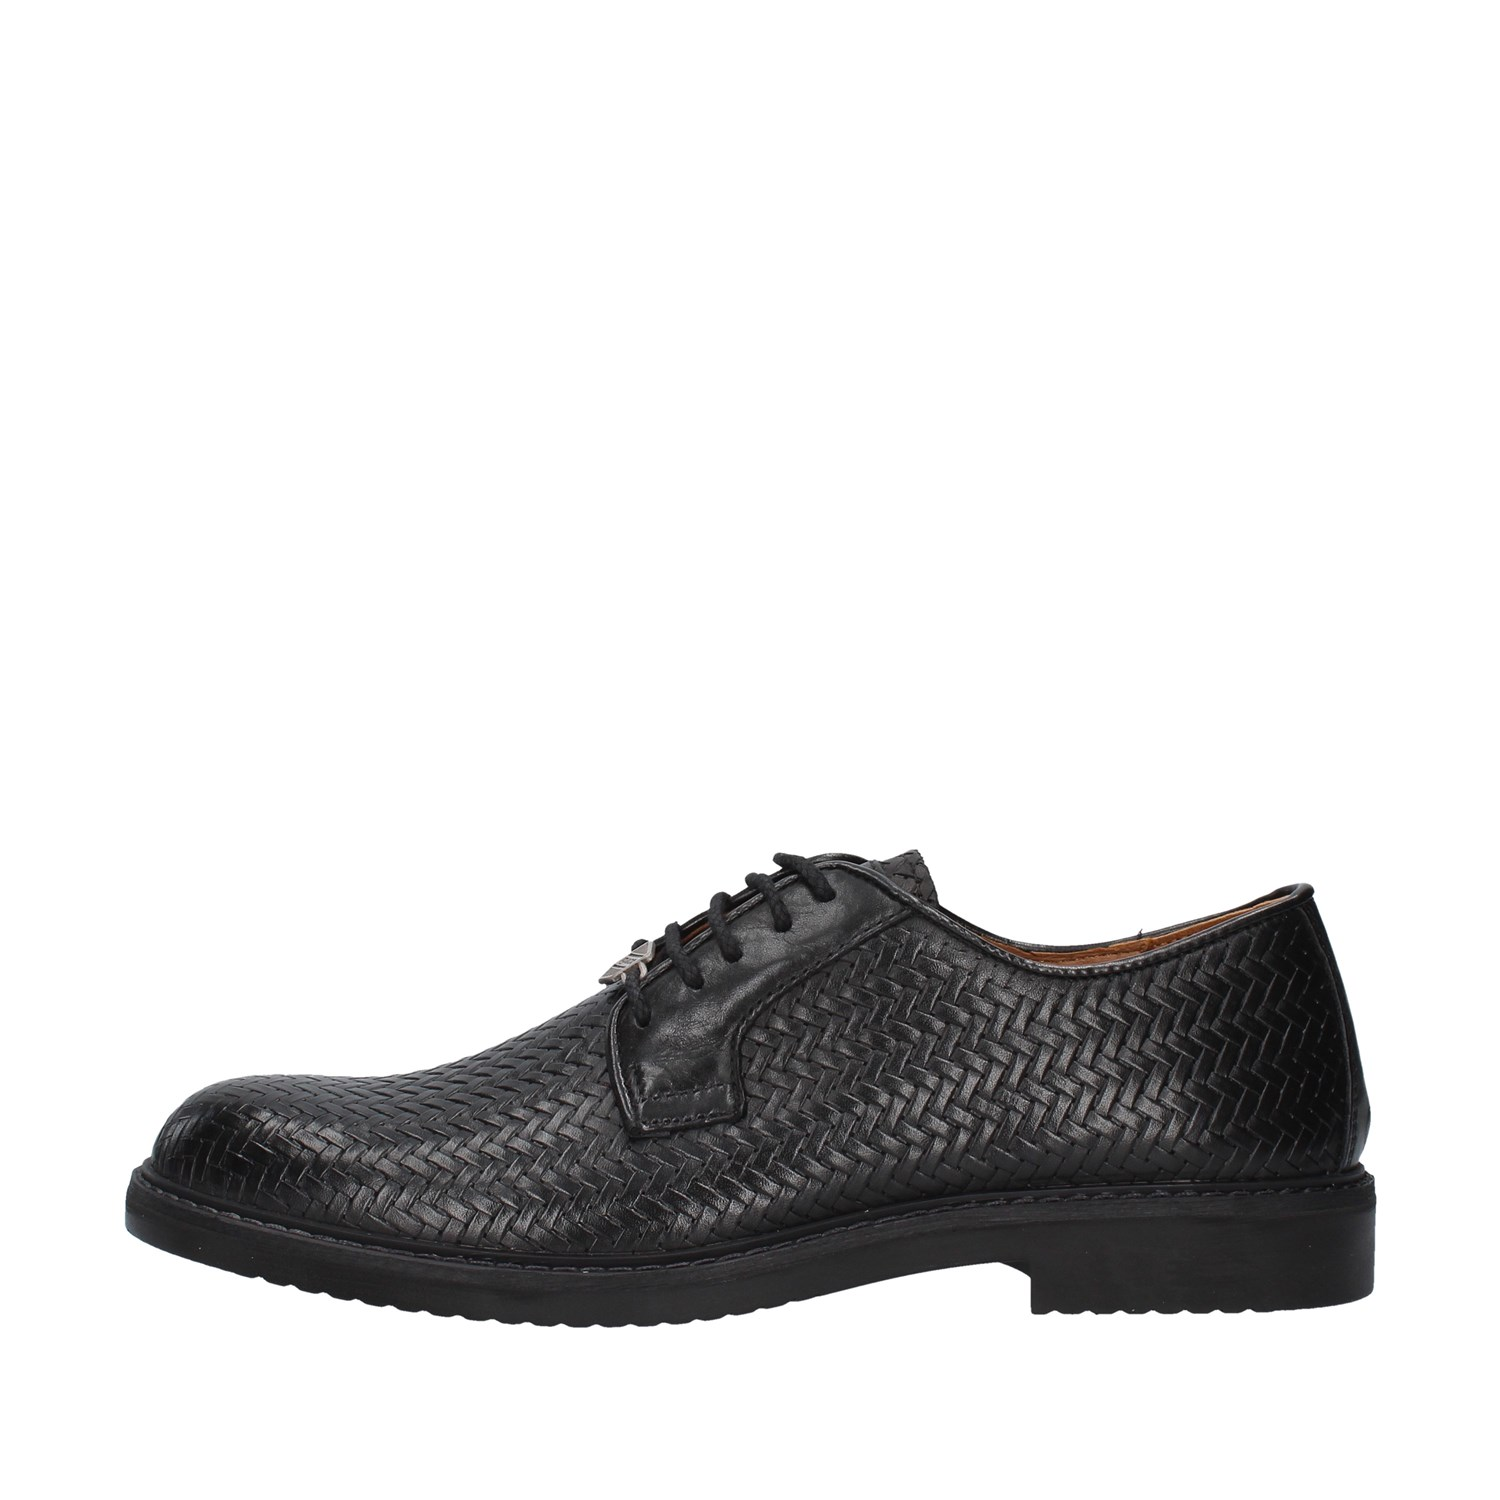 Igi&co Shoes Man Laced BLACK 3101900